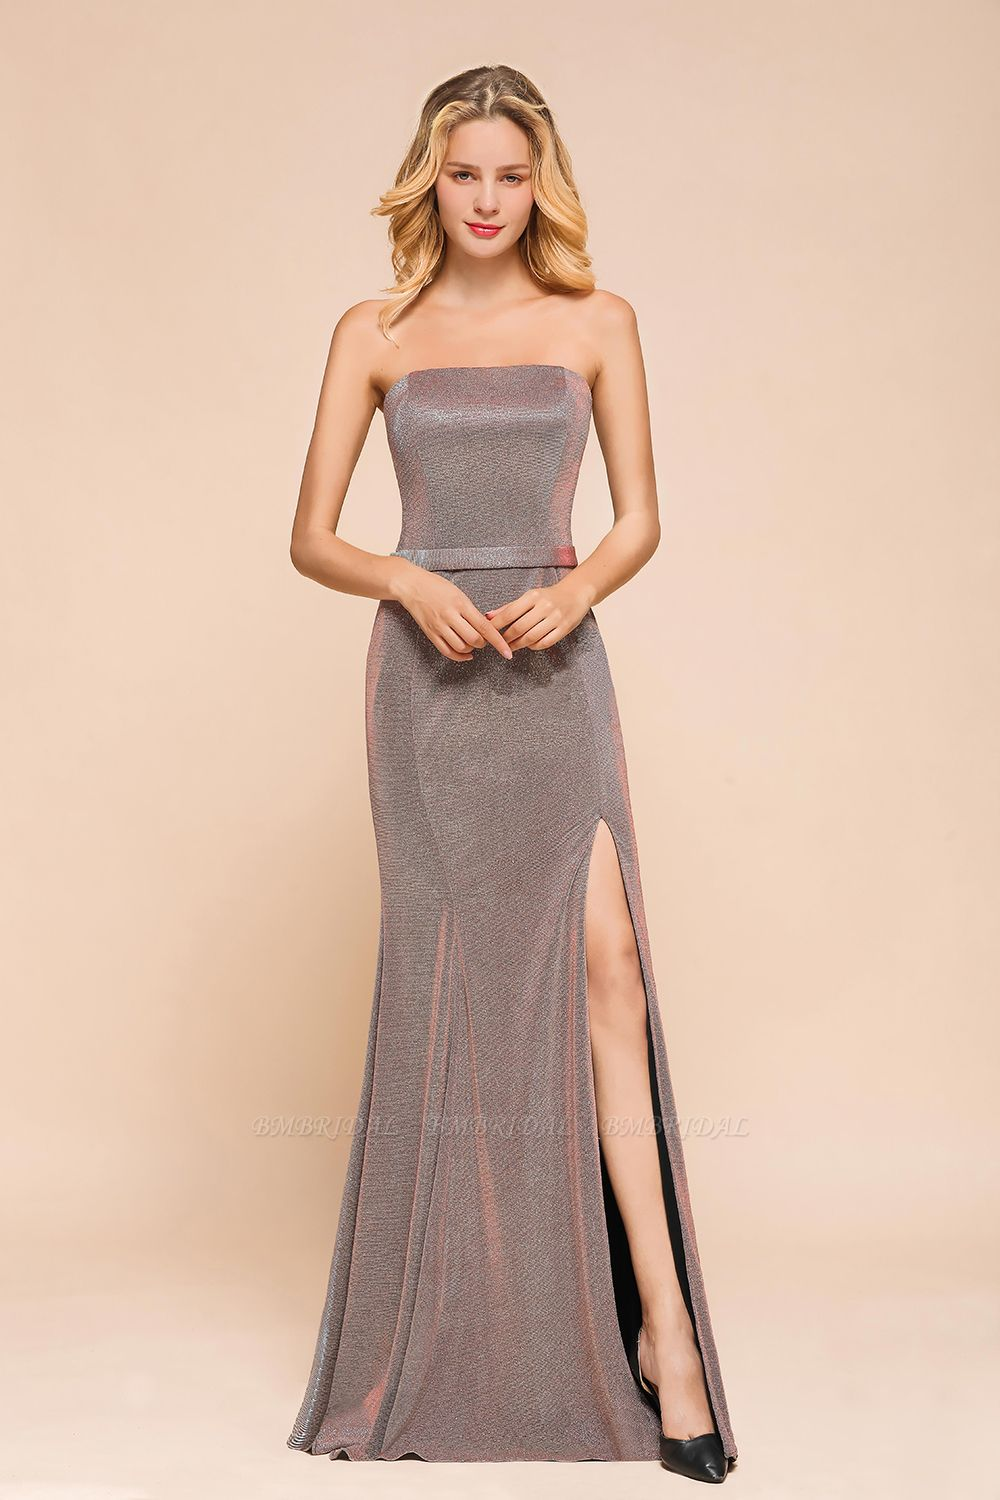 Stunning Strapless Long Prom Dress With Split Online